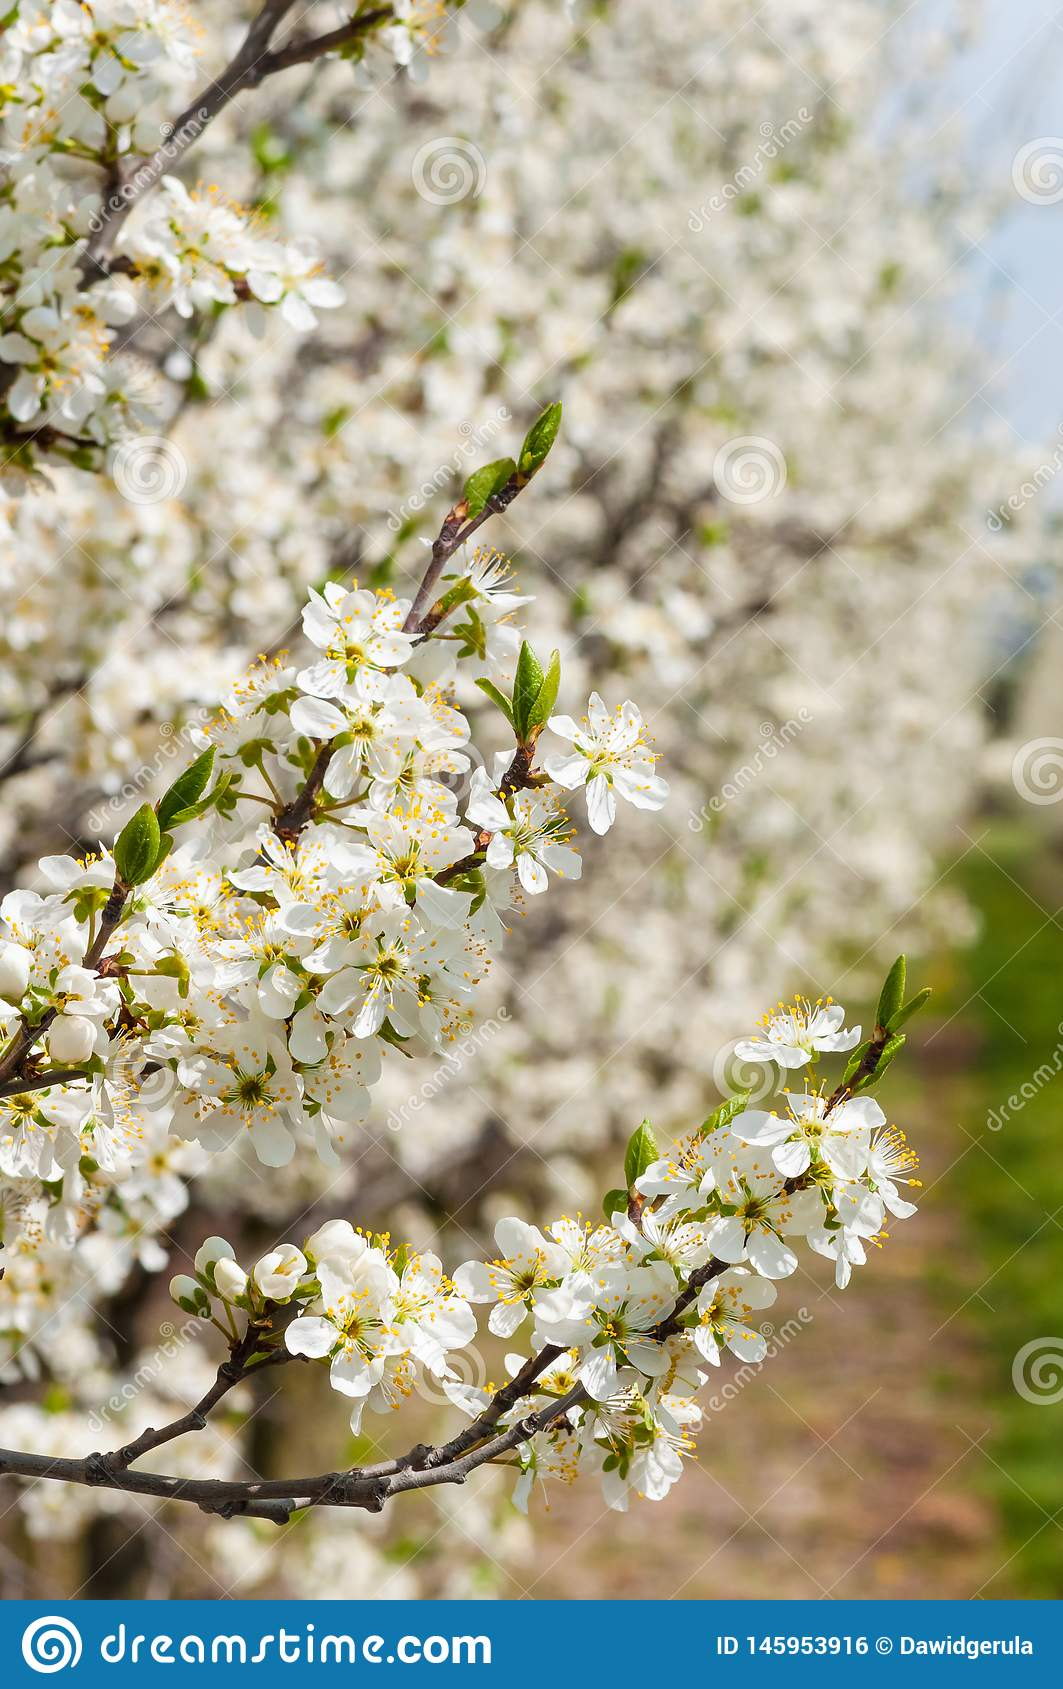 Seasonal spring white plum flowers blossoming. Blossom of plum orchard in Poland